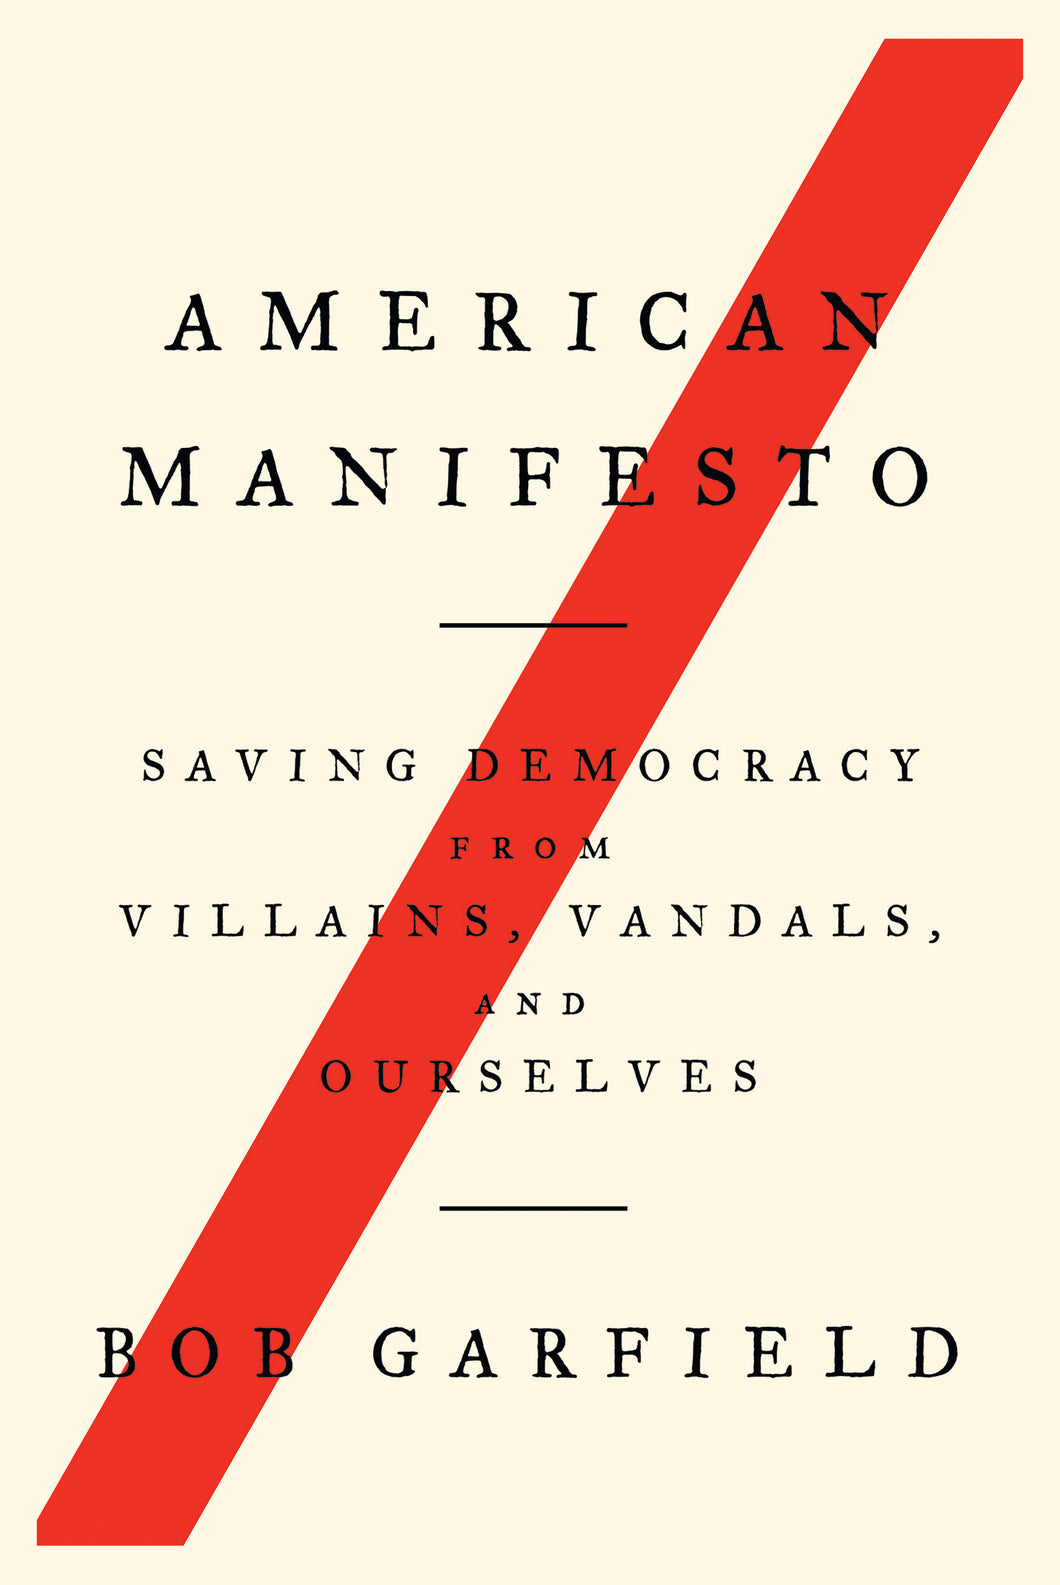 American Manifesto: Saving Democracy from Villains, Vandals, and Ourselves by Bob Garfield